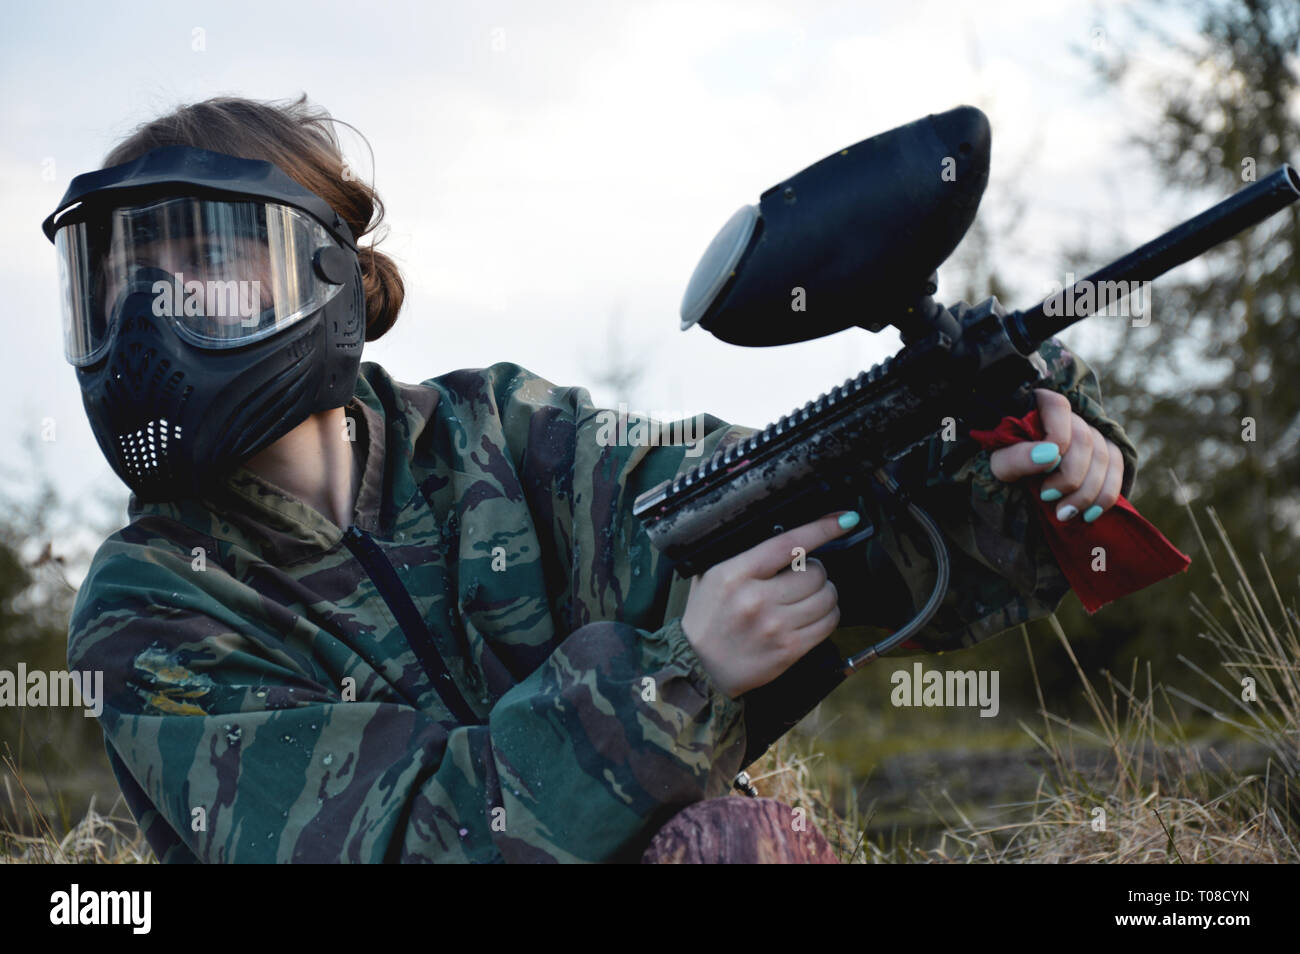 Paintball sport player girl in protective camouflage uniform and mask with marker gun outdoors - Stock Image